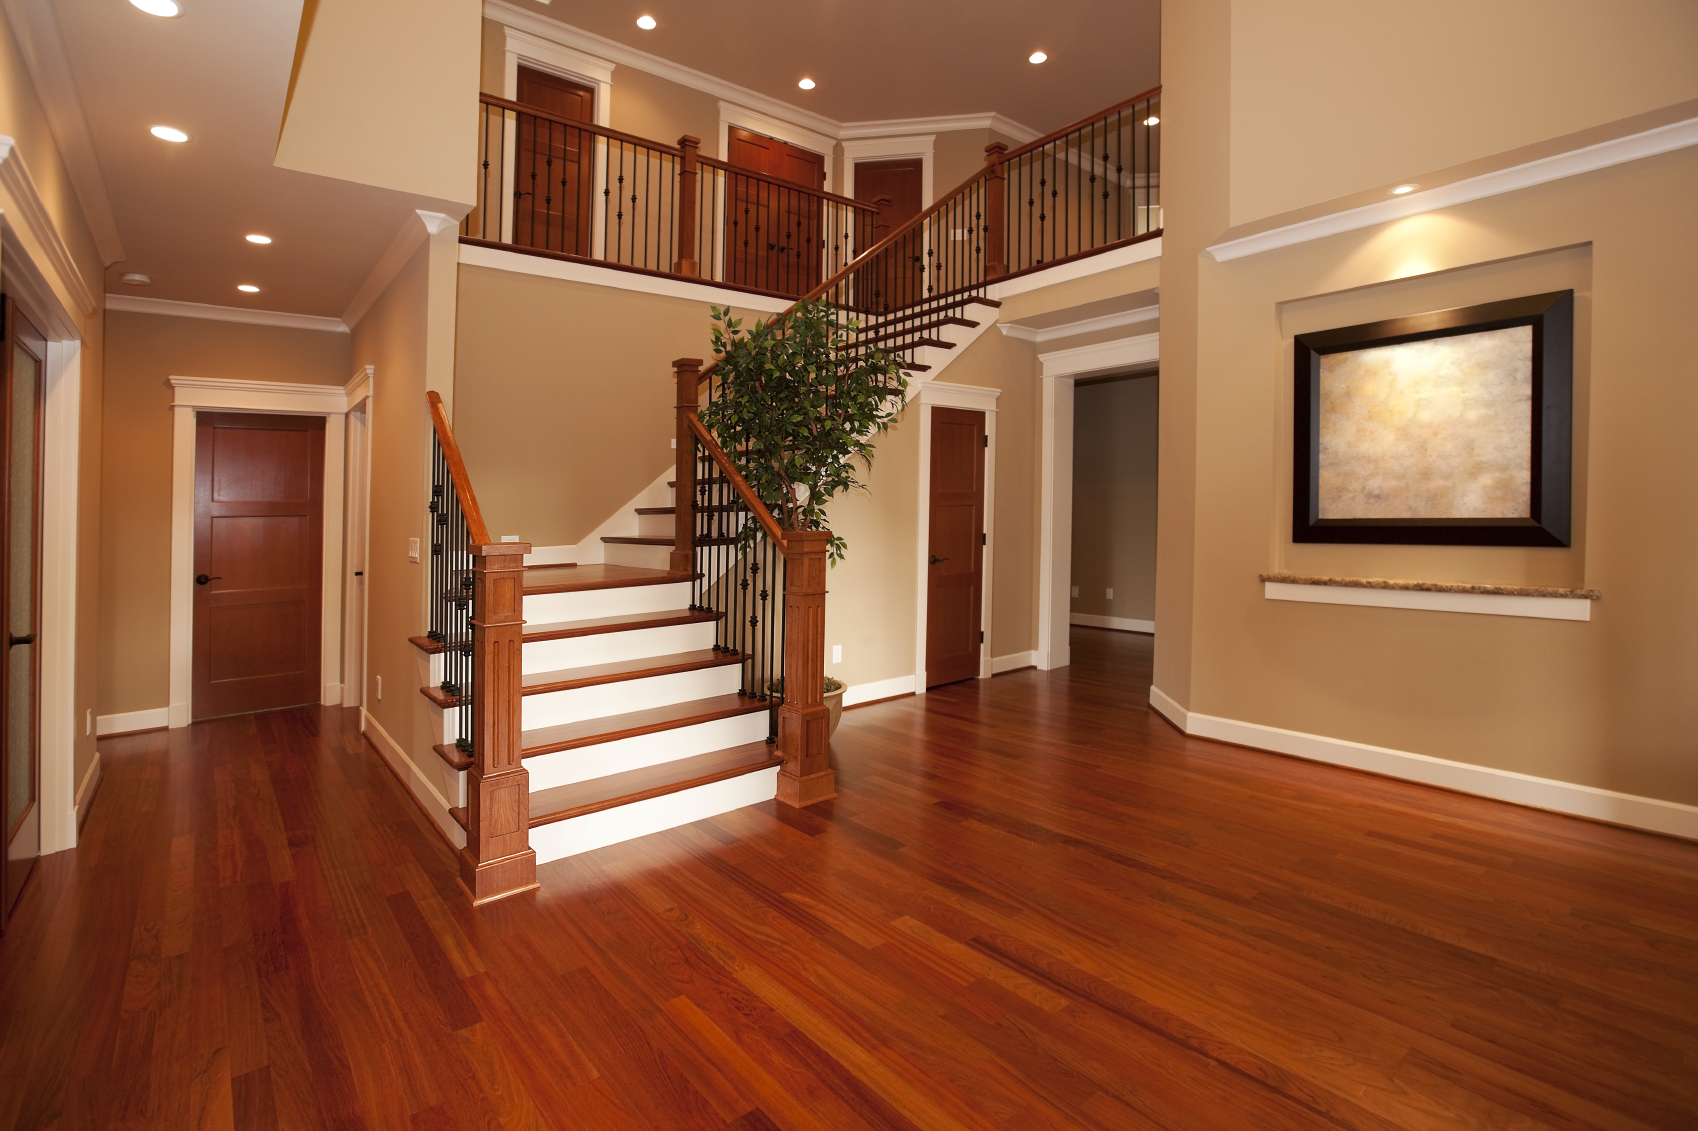 Artwork Of Most Popular Hardwood Floor Colors That Make Your Outlook - Most popular stain color for hardwood floors